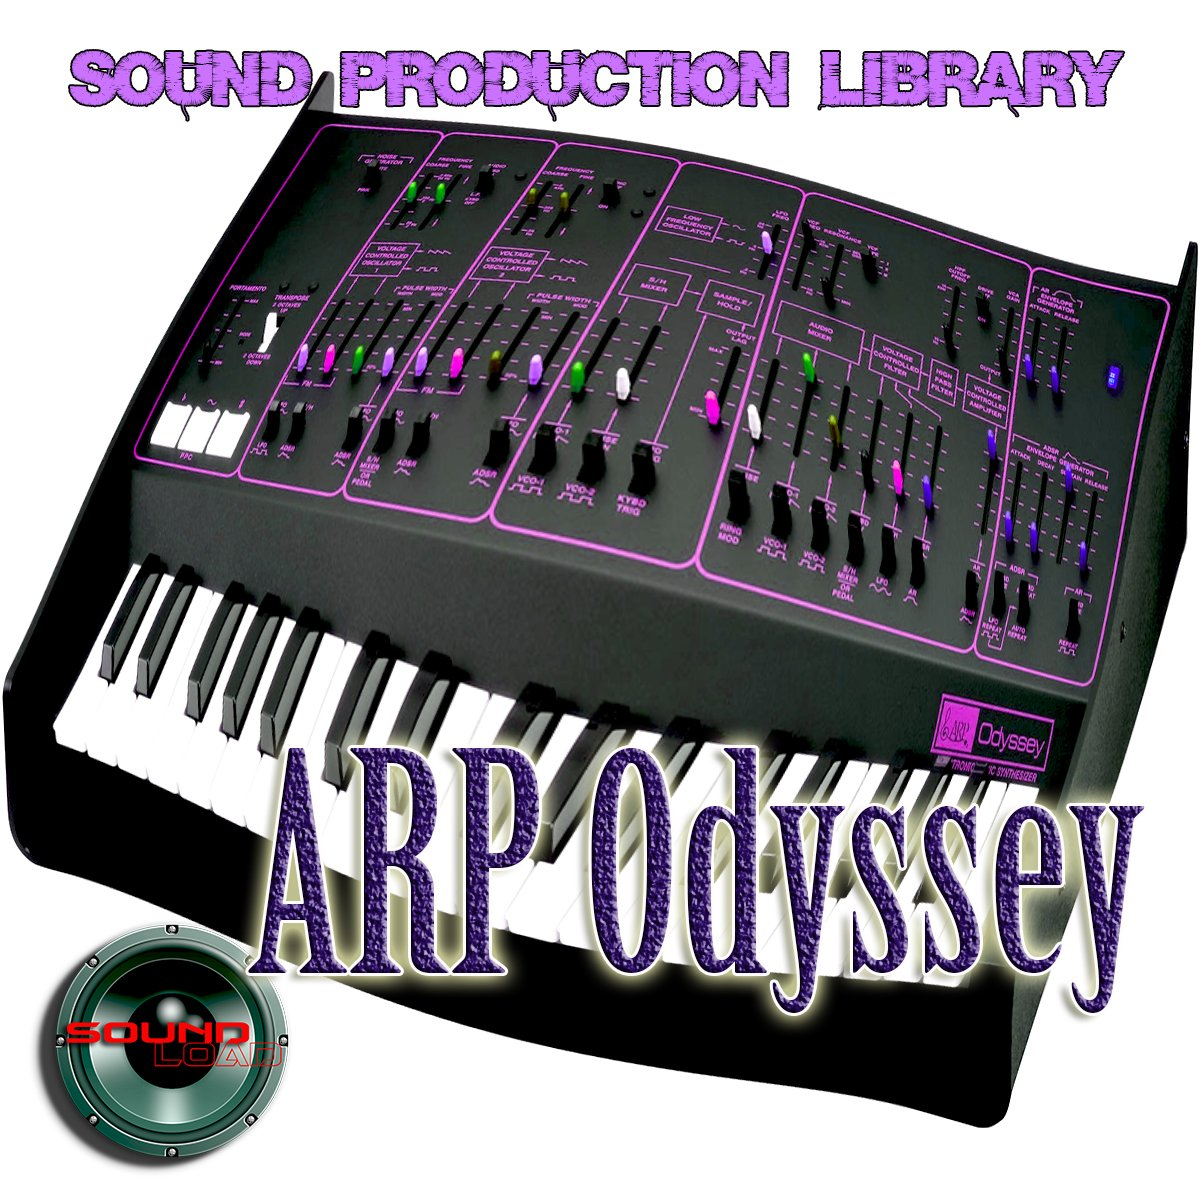 ARP Odyssey - The KING of analog sounds - Large unique original 24bit WAVE/Kontakt Multi-Layer Samples Studio Library; FREE USA Continental Shipping on DVD or download